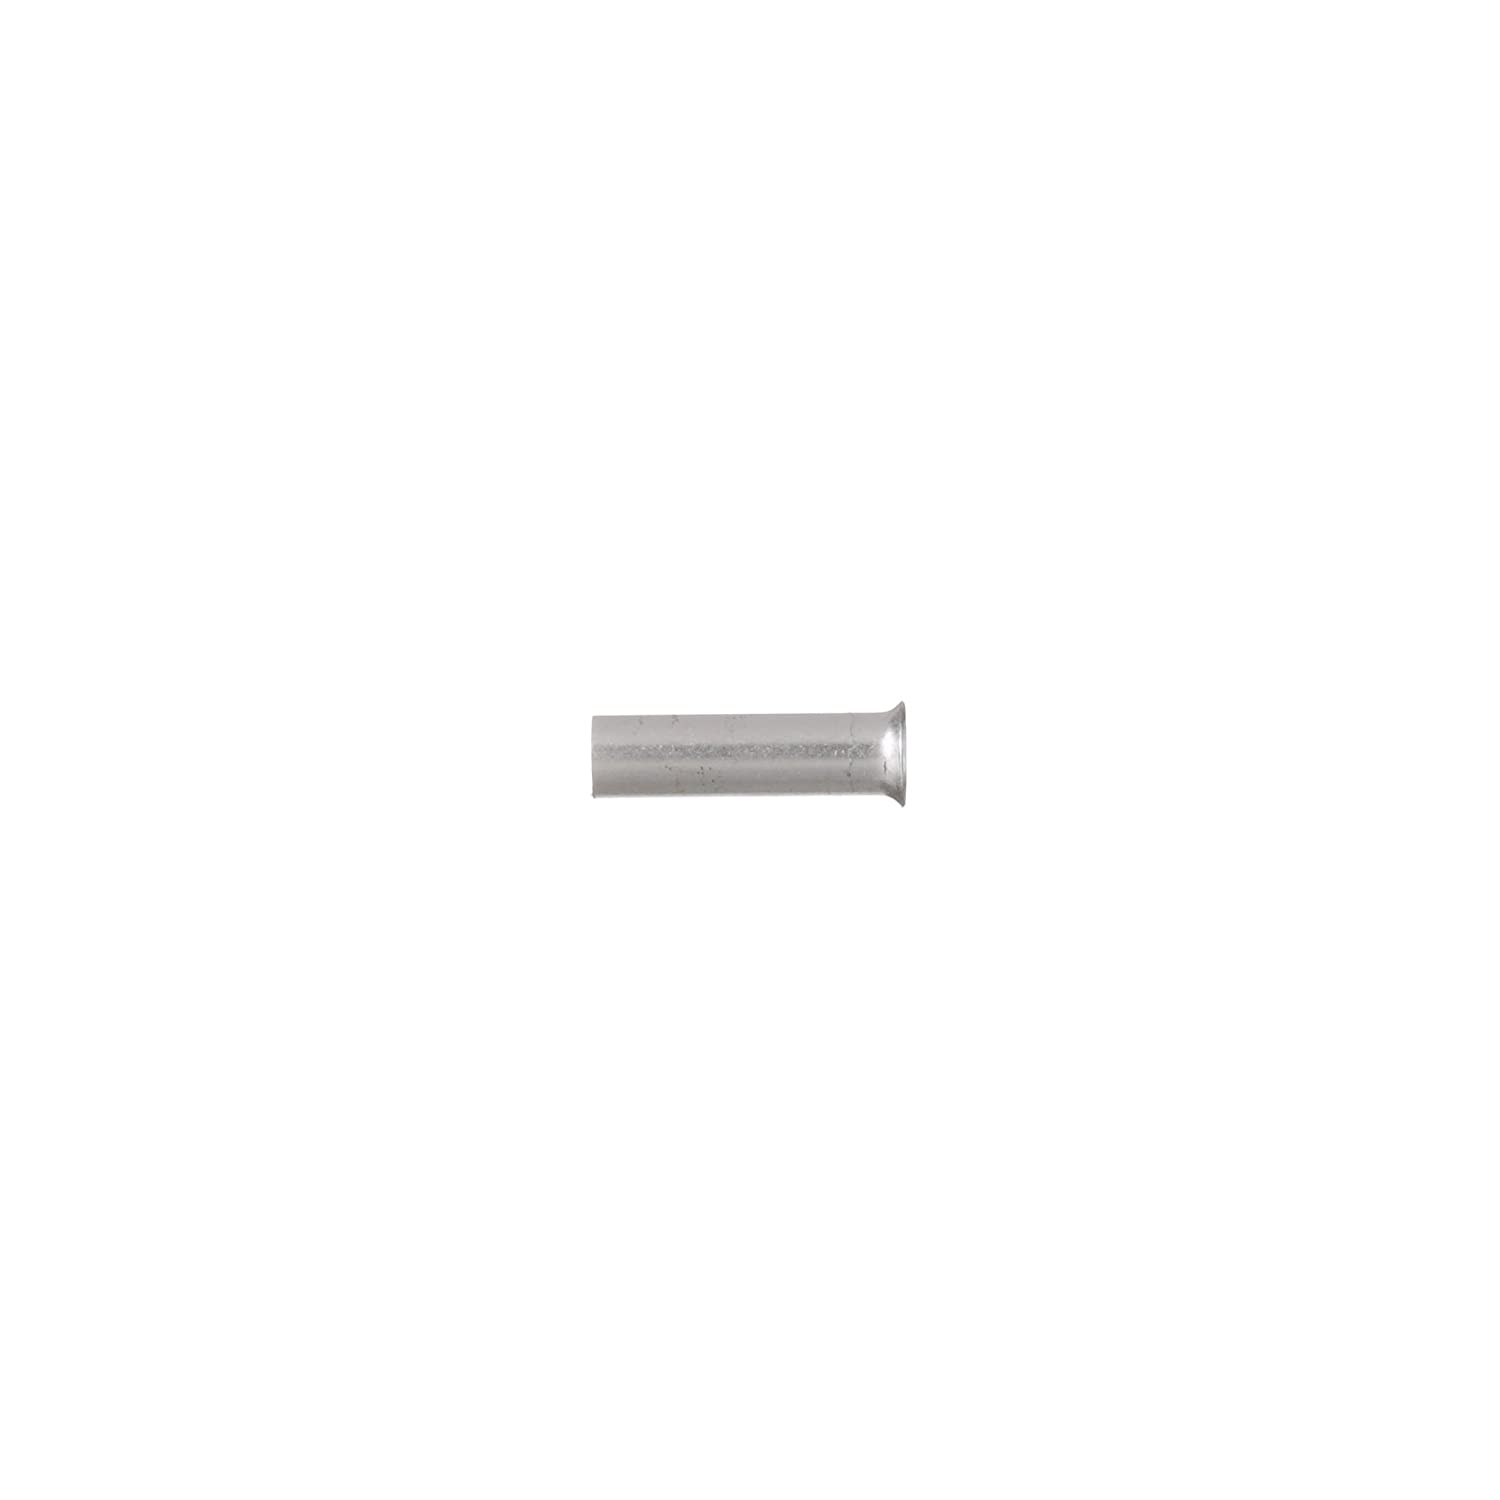 Panduit F73-7-M Ferrule, Non-Insulated, 24 AWG (0.25mm² ), 0.28-Inch Length (1,000-Pack)